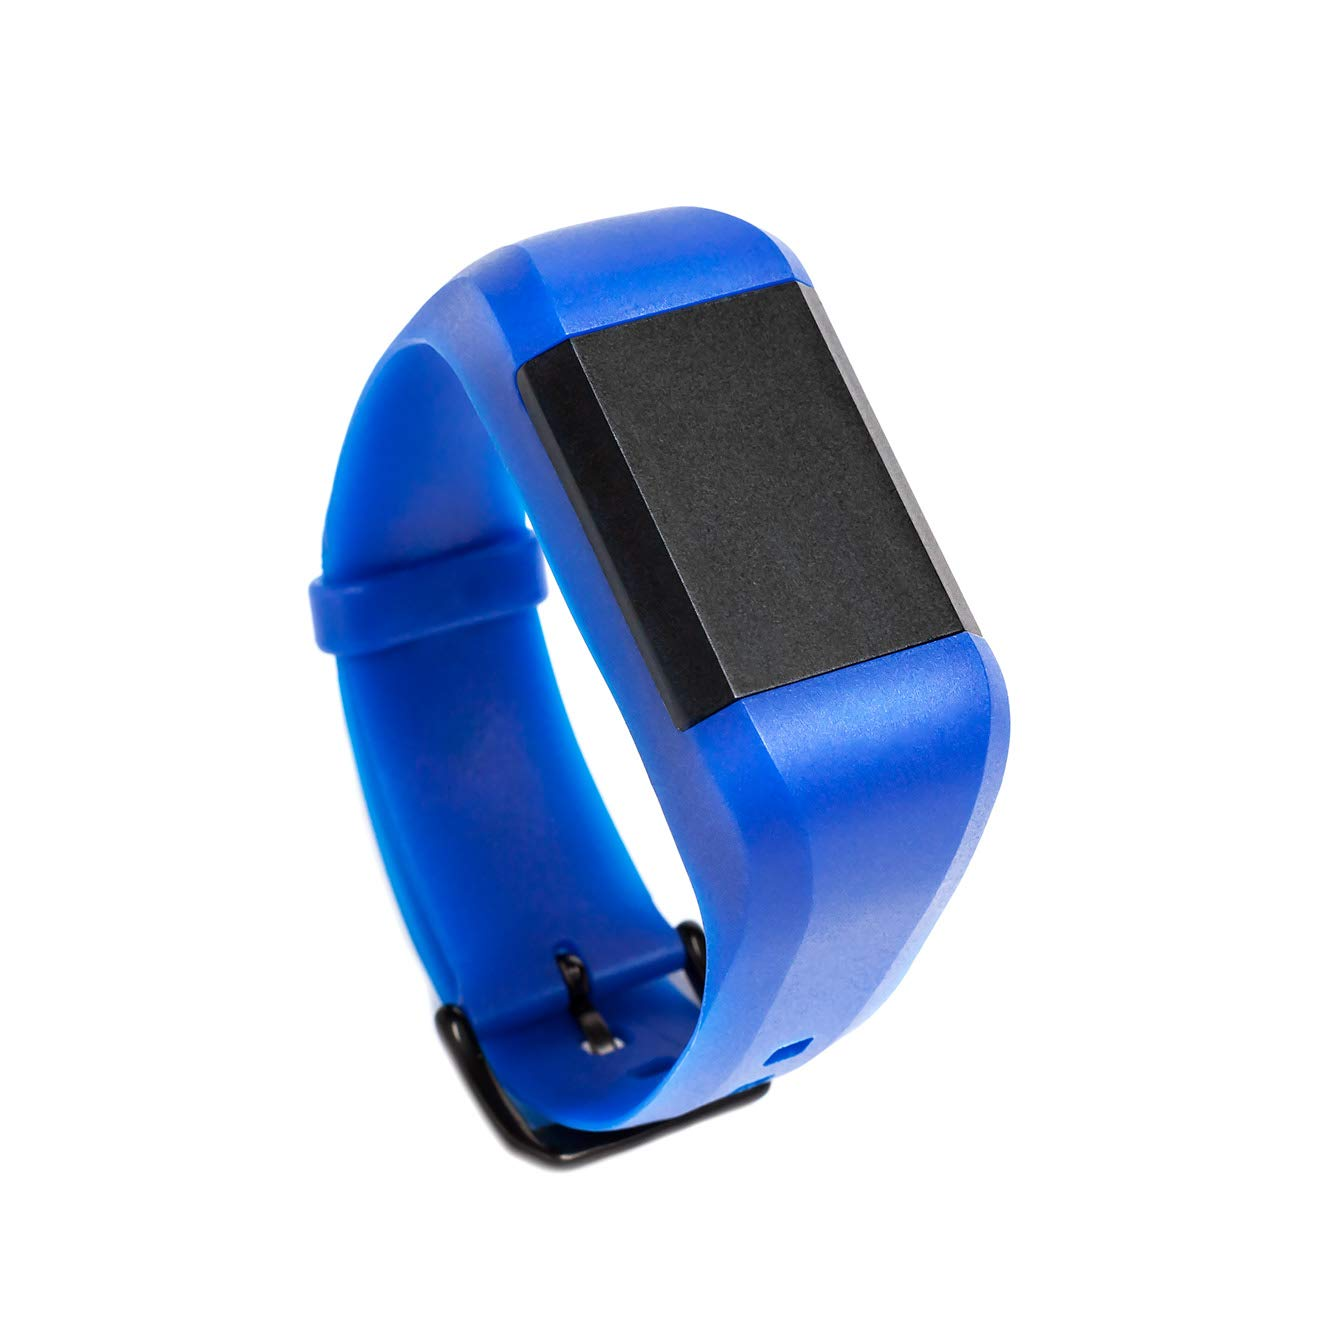 Revibe Connect: Vibration Reminder Wristband - Anti-Distraction, Educational Technology, Timer Tool (Regular, Blue) by Re-vibe